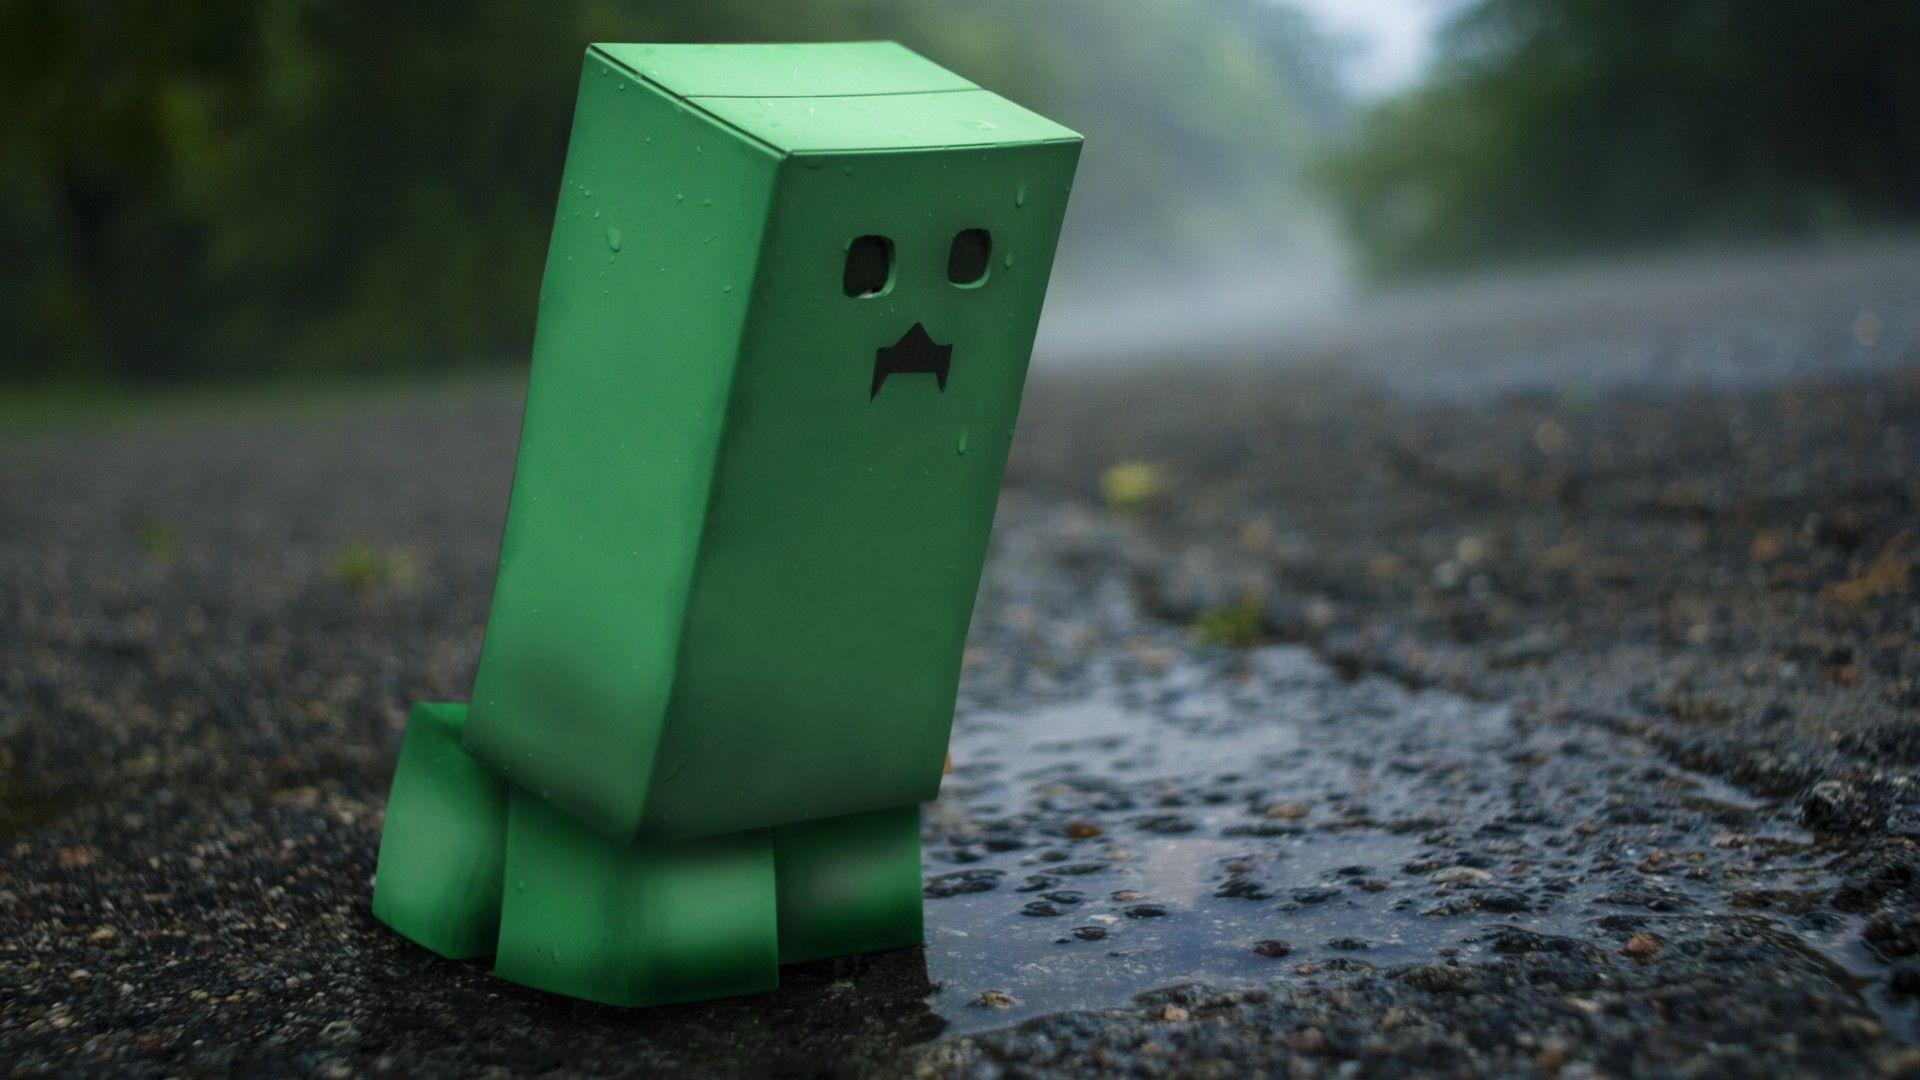 Minecraft Image Backgrounds HD Wallpapers Creeper Minecraft Image